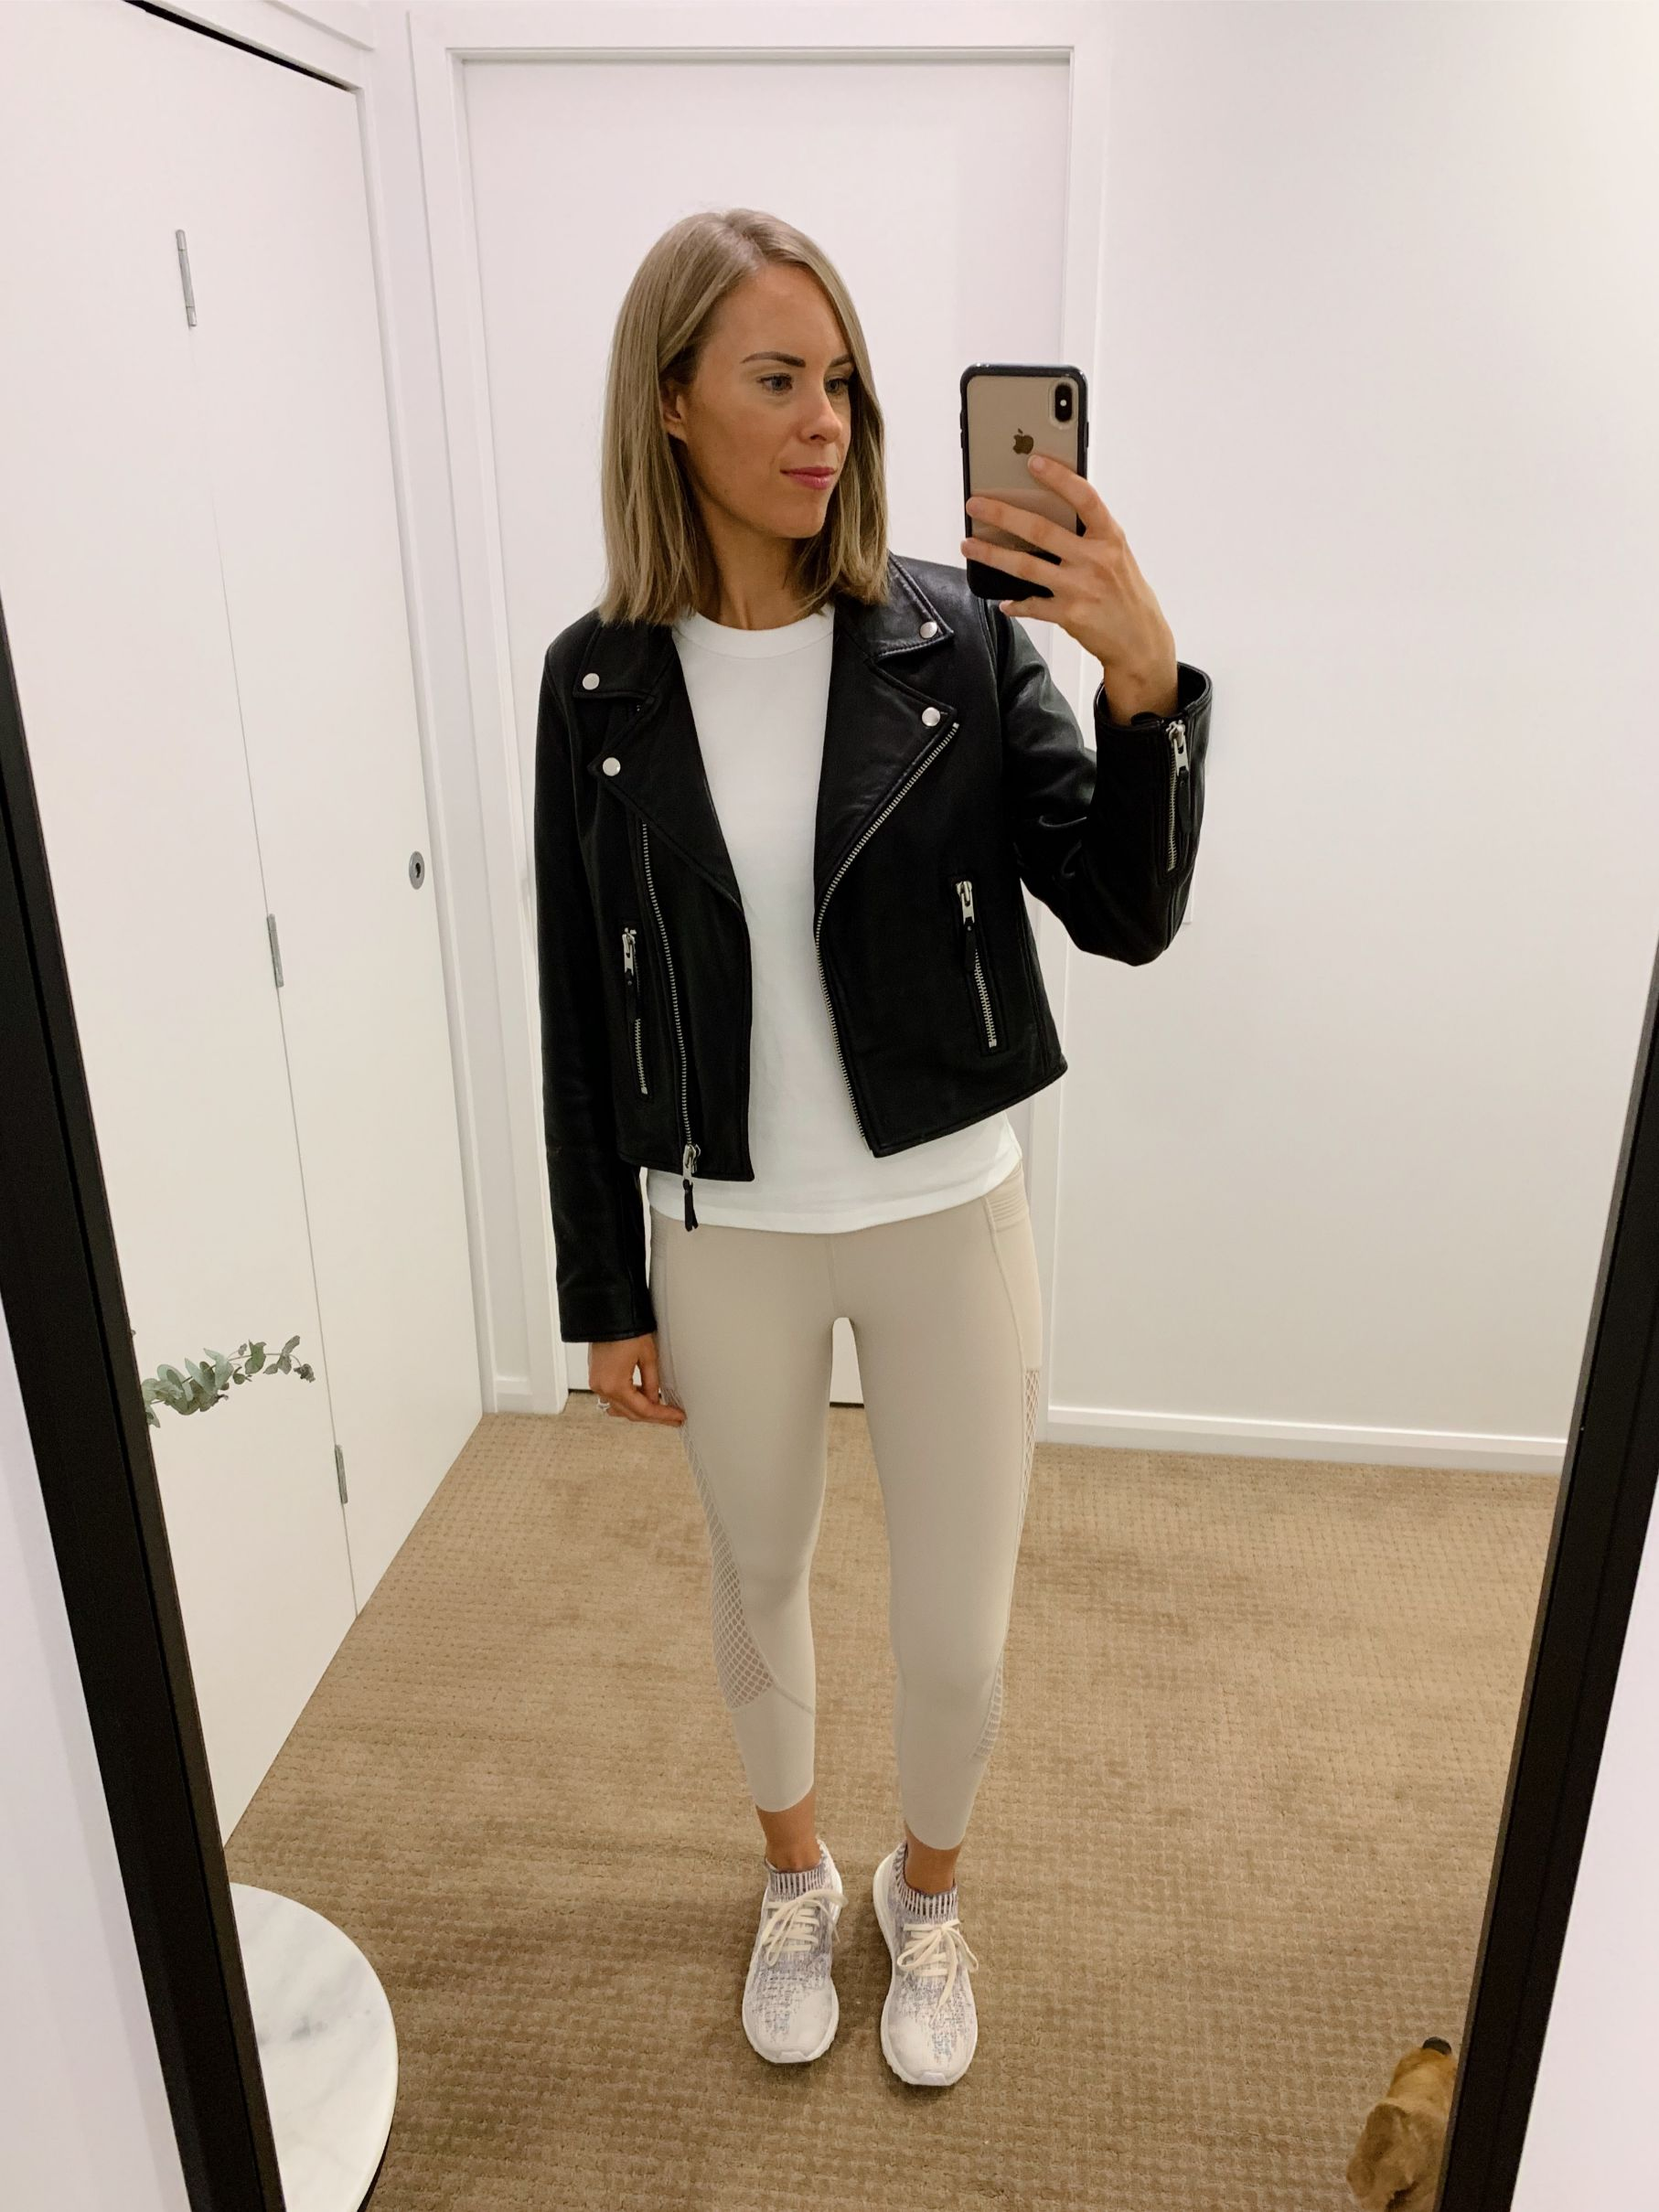 athleisure outfit ideas pinterest fashion blogger style neutral athletic wear workout everyday outfits errands black leather biker jacket white tee and leggings 5